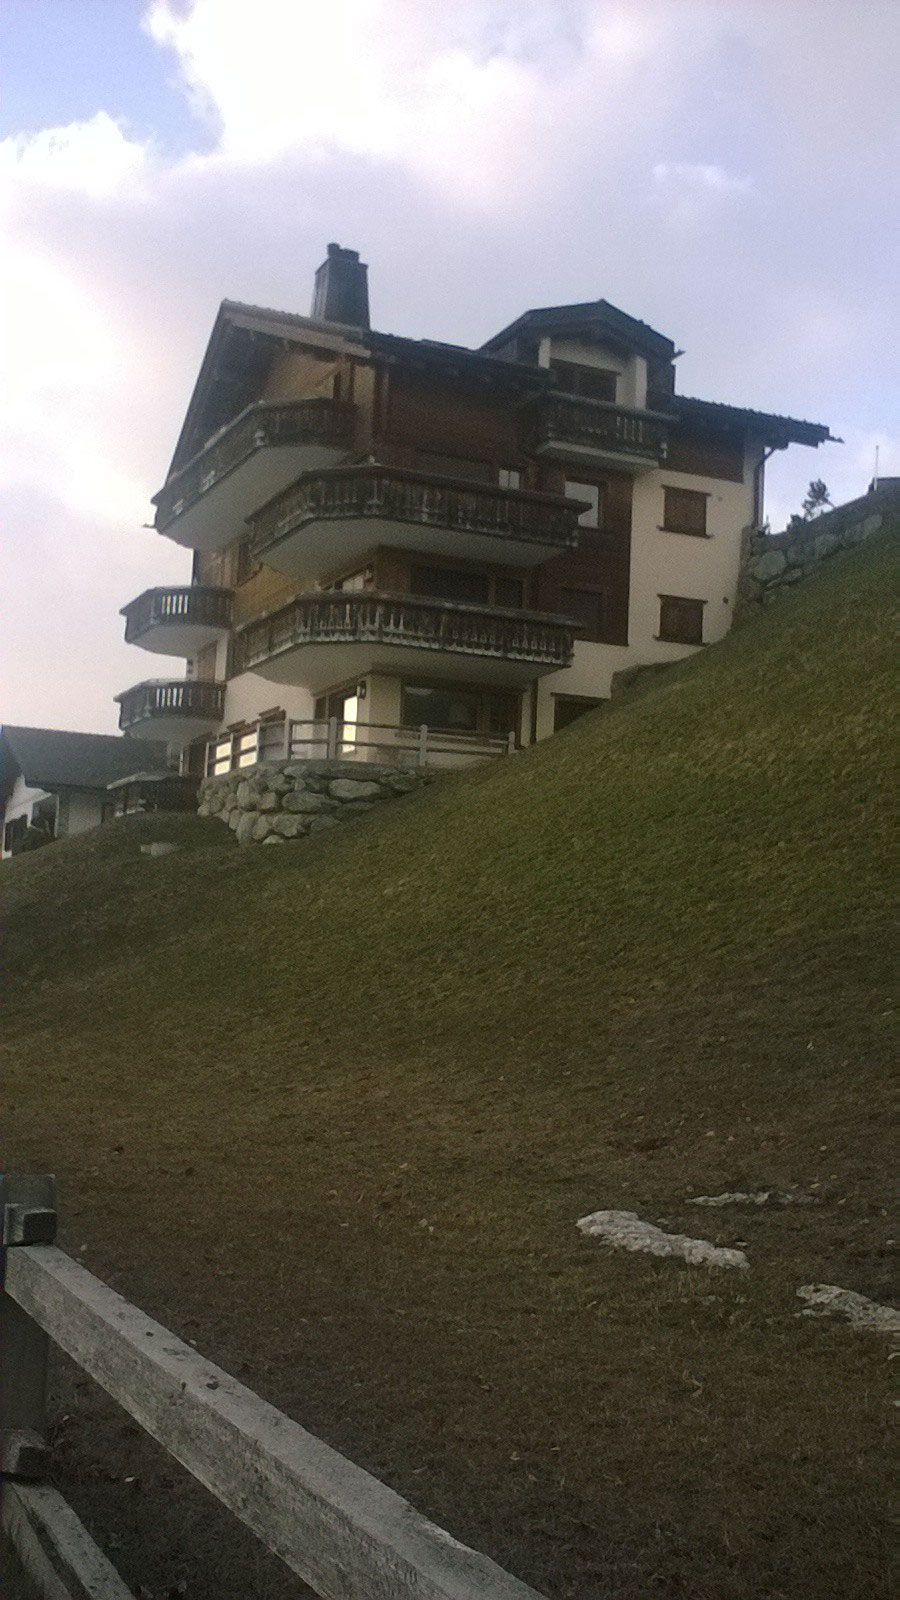 Surrounded by wonderful chalets